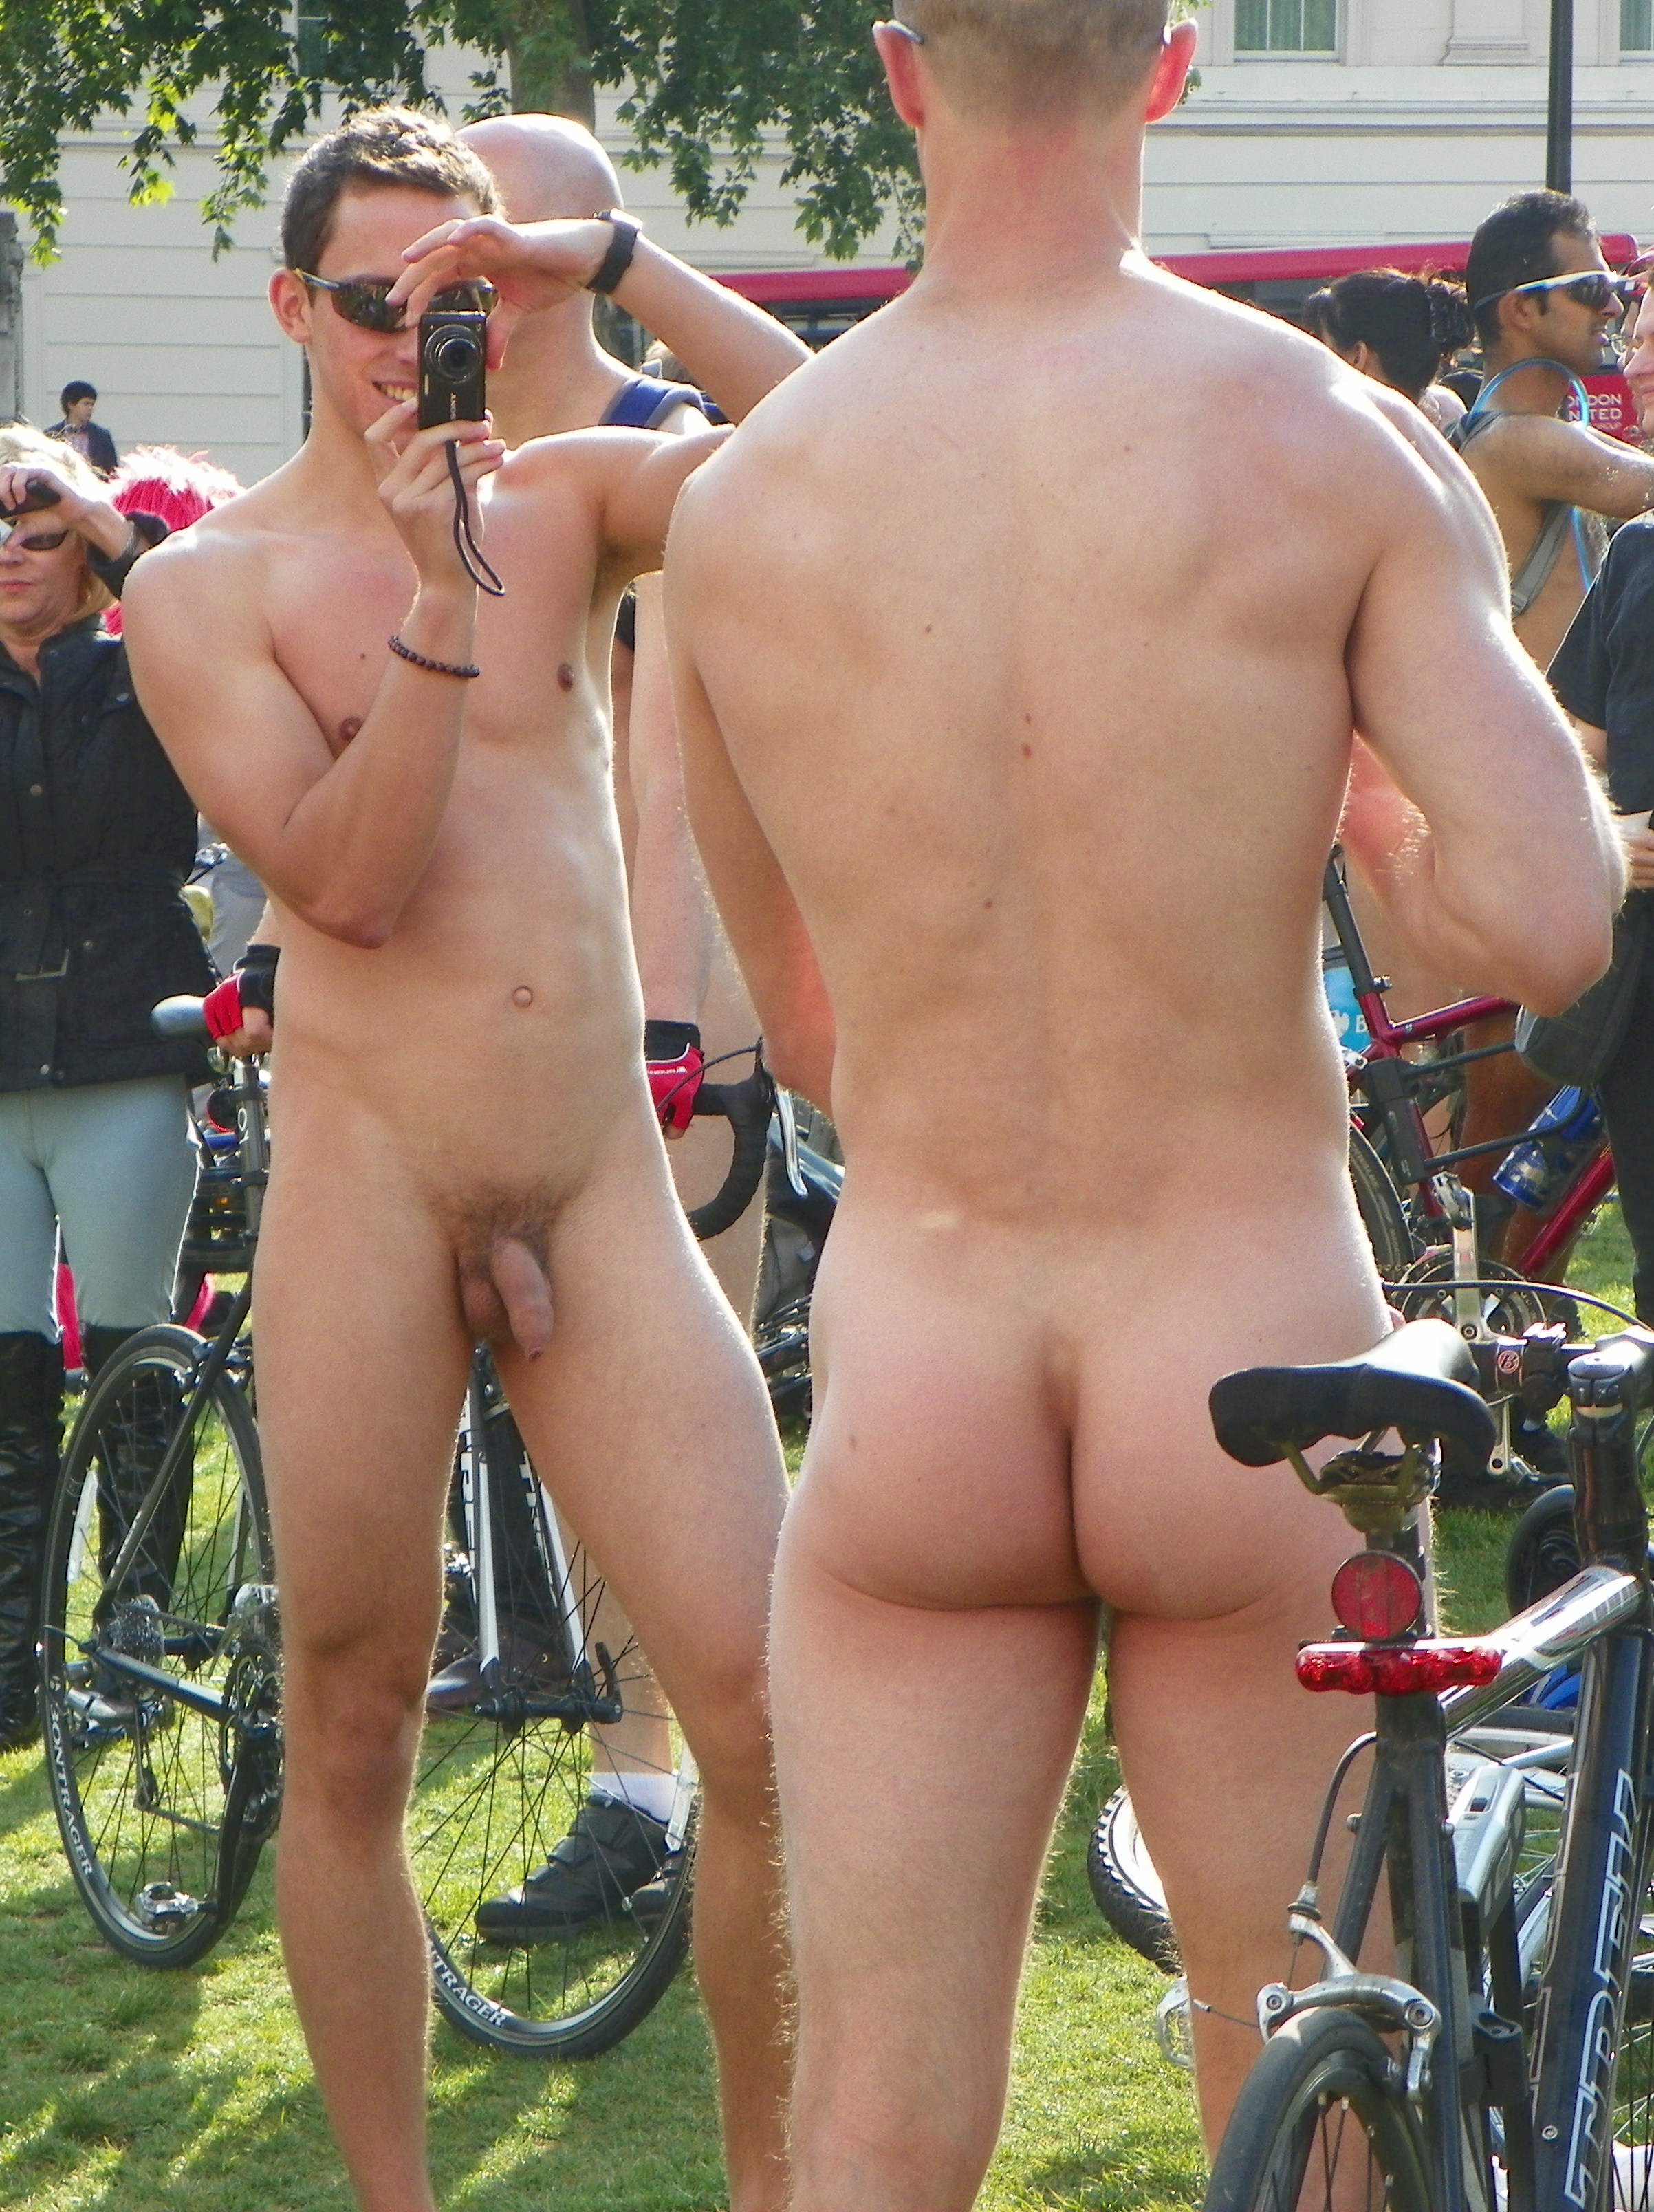 nude young boys on bicycles